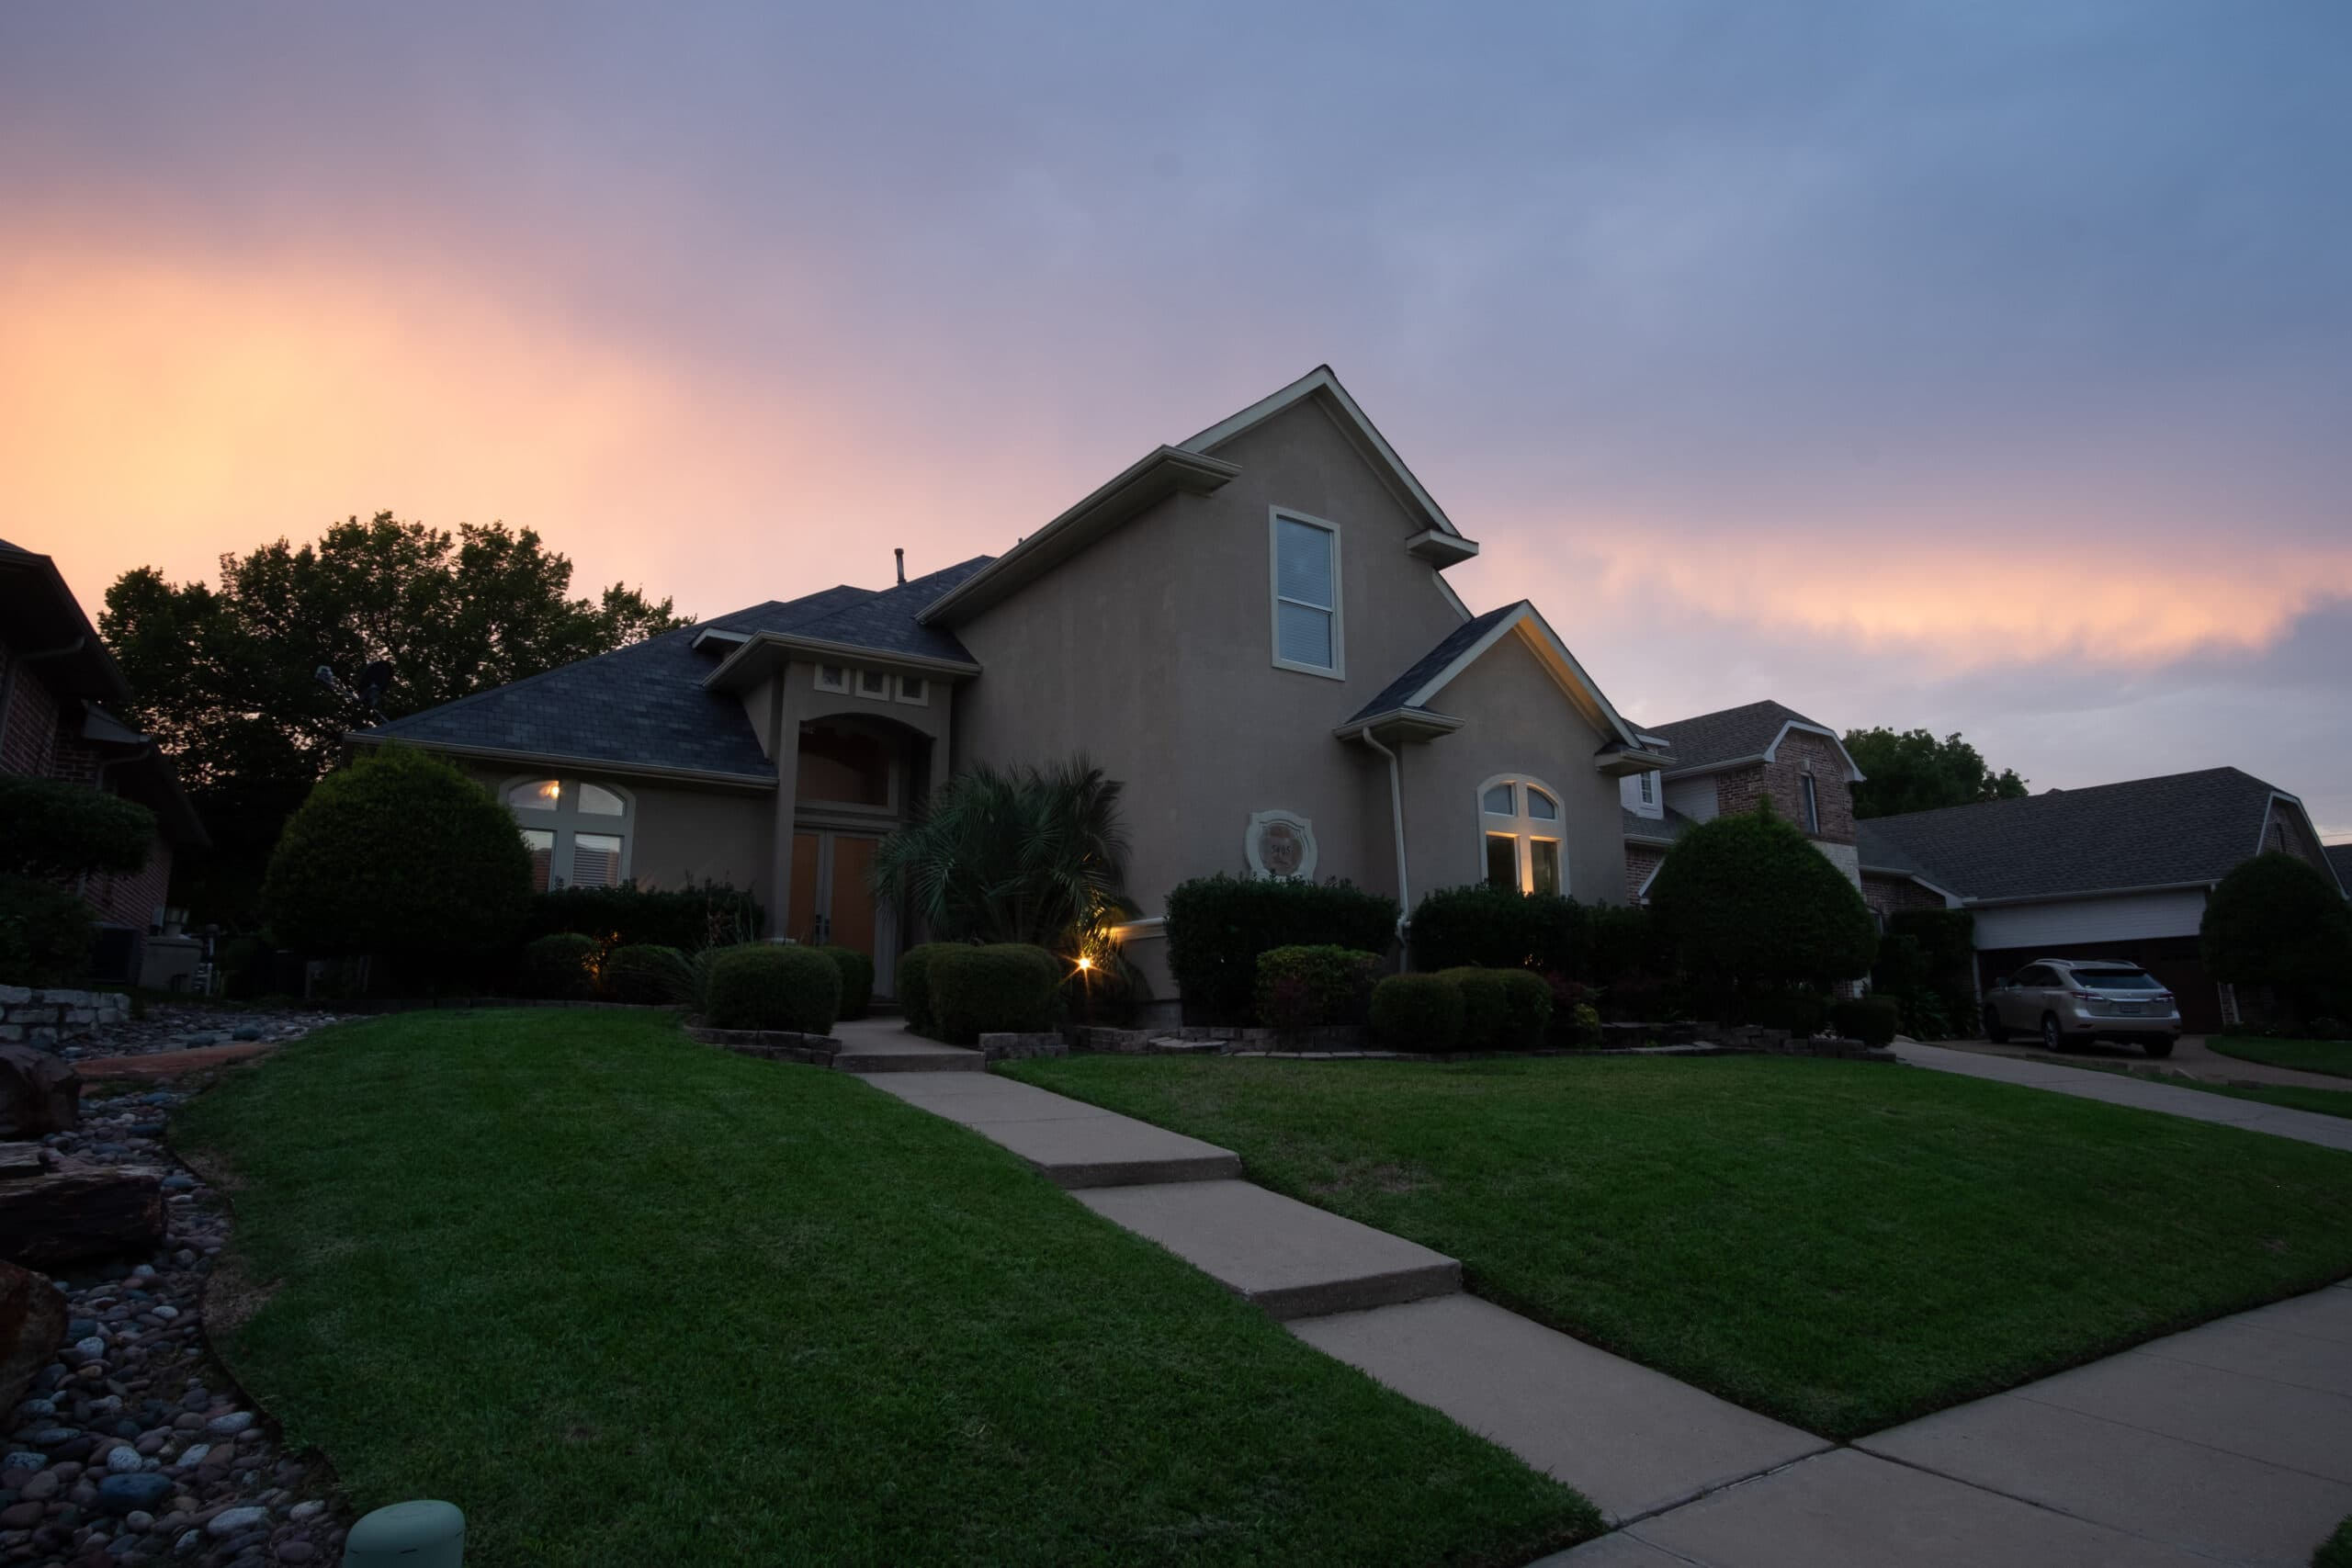 Before sunset shot of home